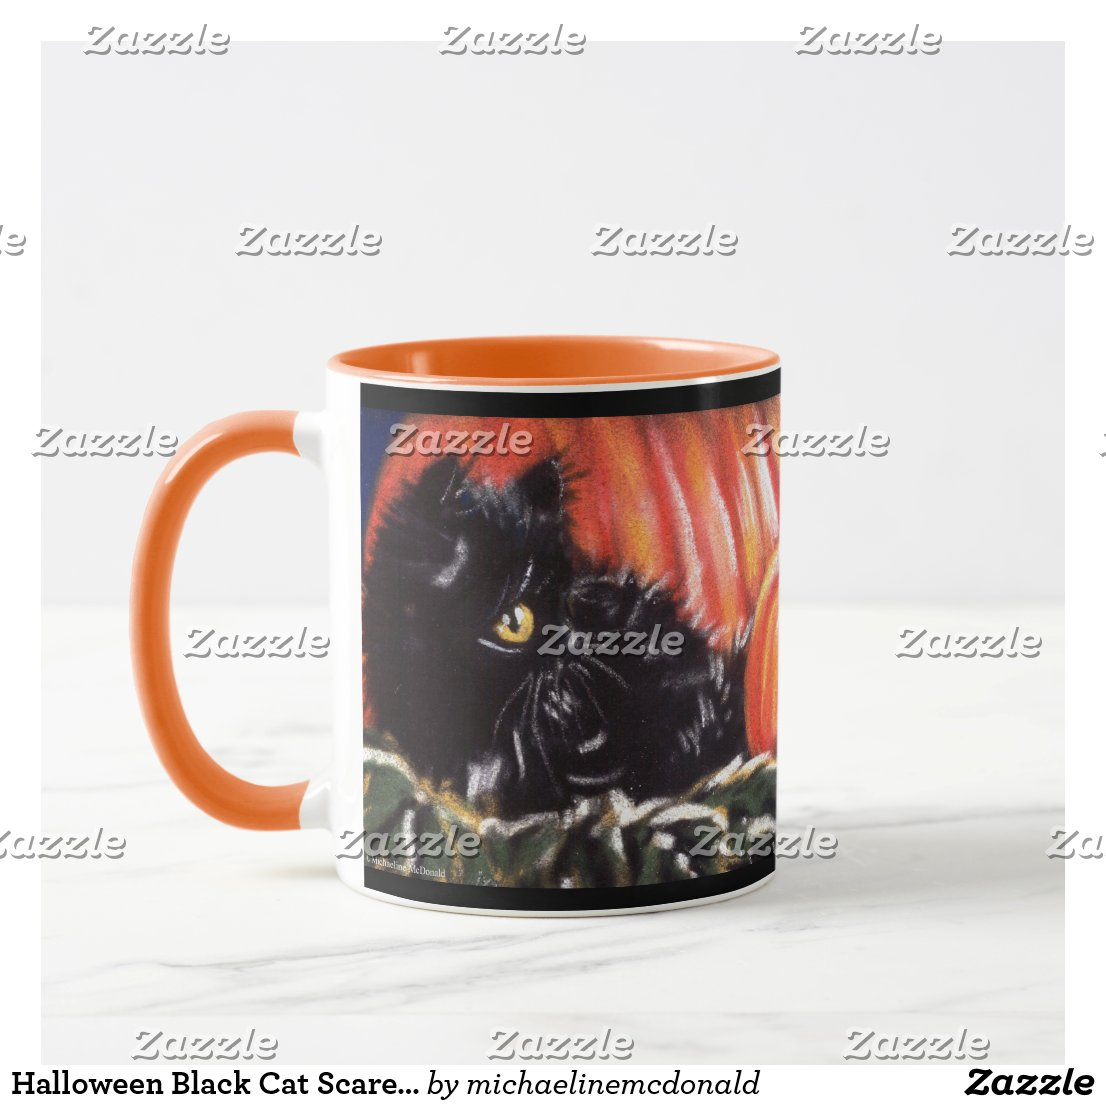 Halloween Black Cat Scaredy Cat Mug